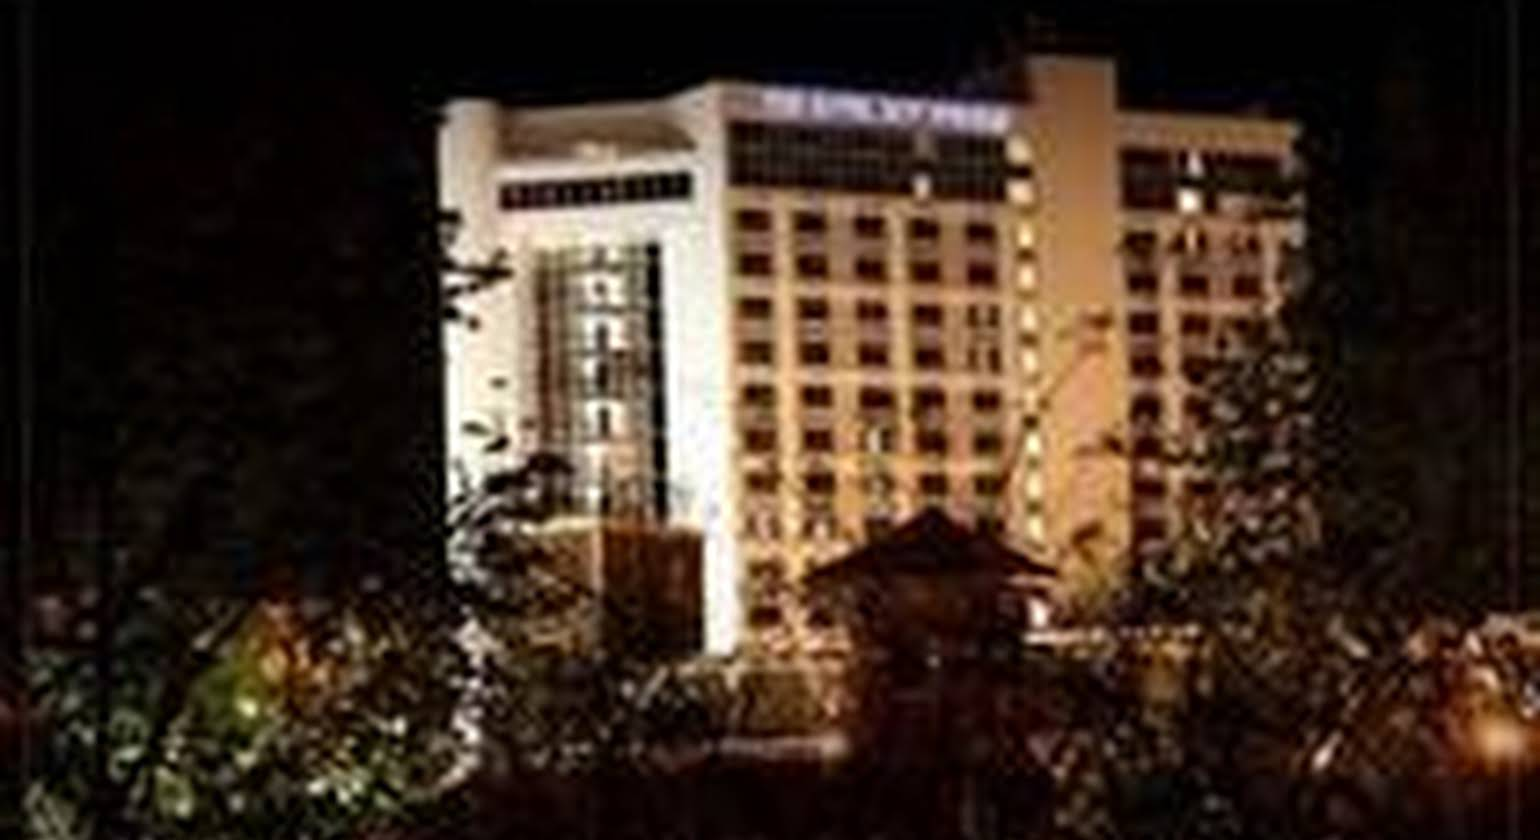 The Austin Convention Hotel and Spa